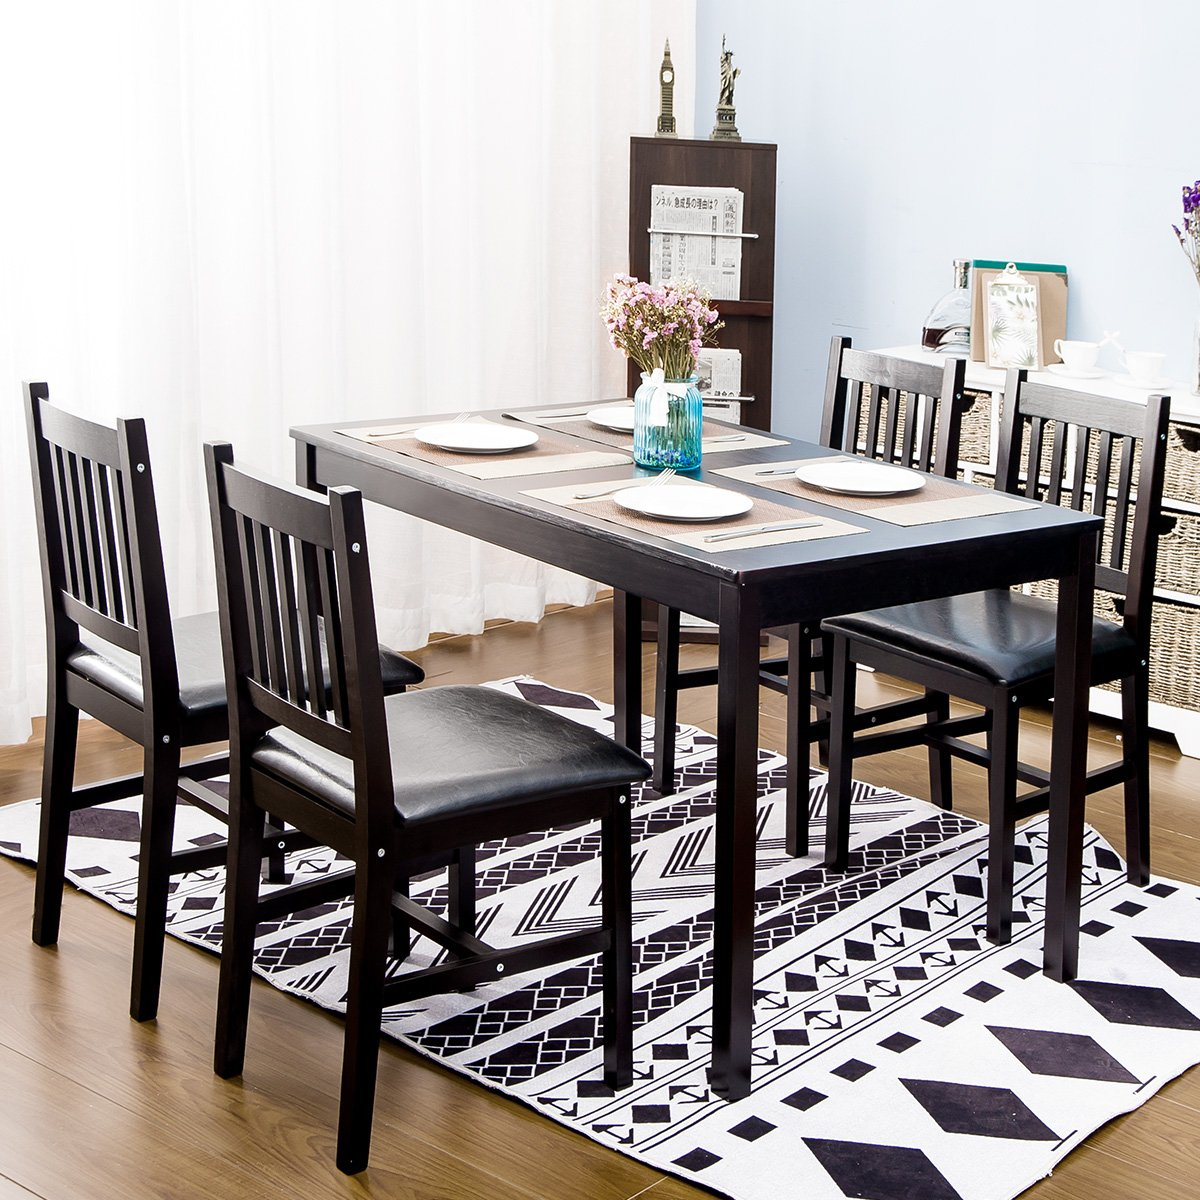 Harper&Bright Designs 5 Piece Wood Dining Table Set 4 Person Home Kitchen Table and Chairs (Espresso.)